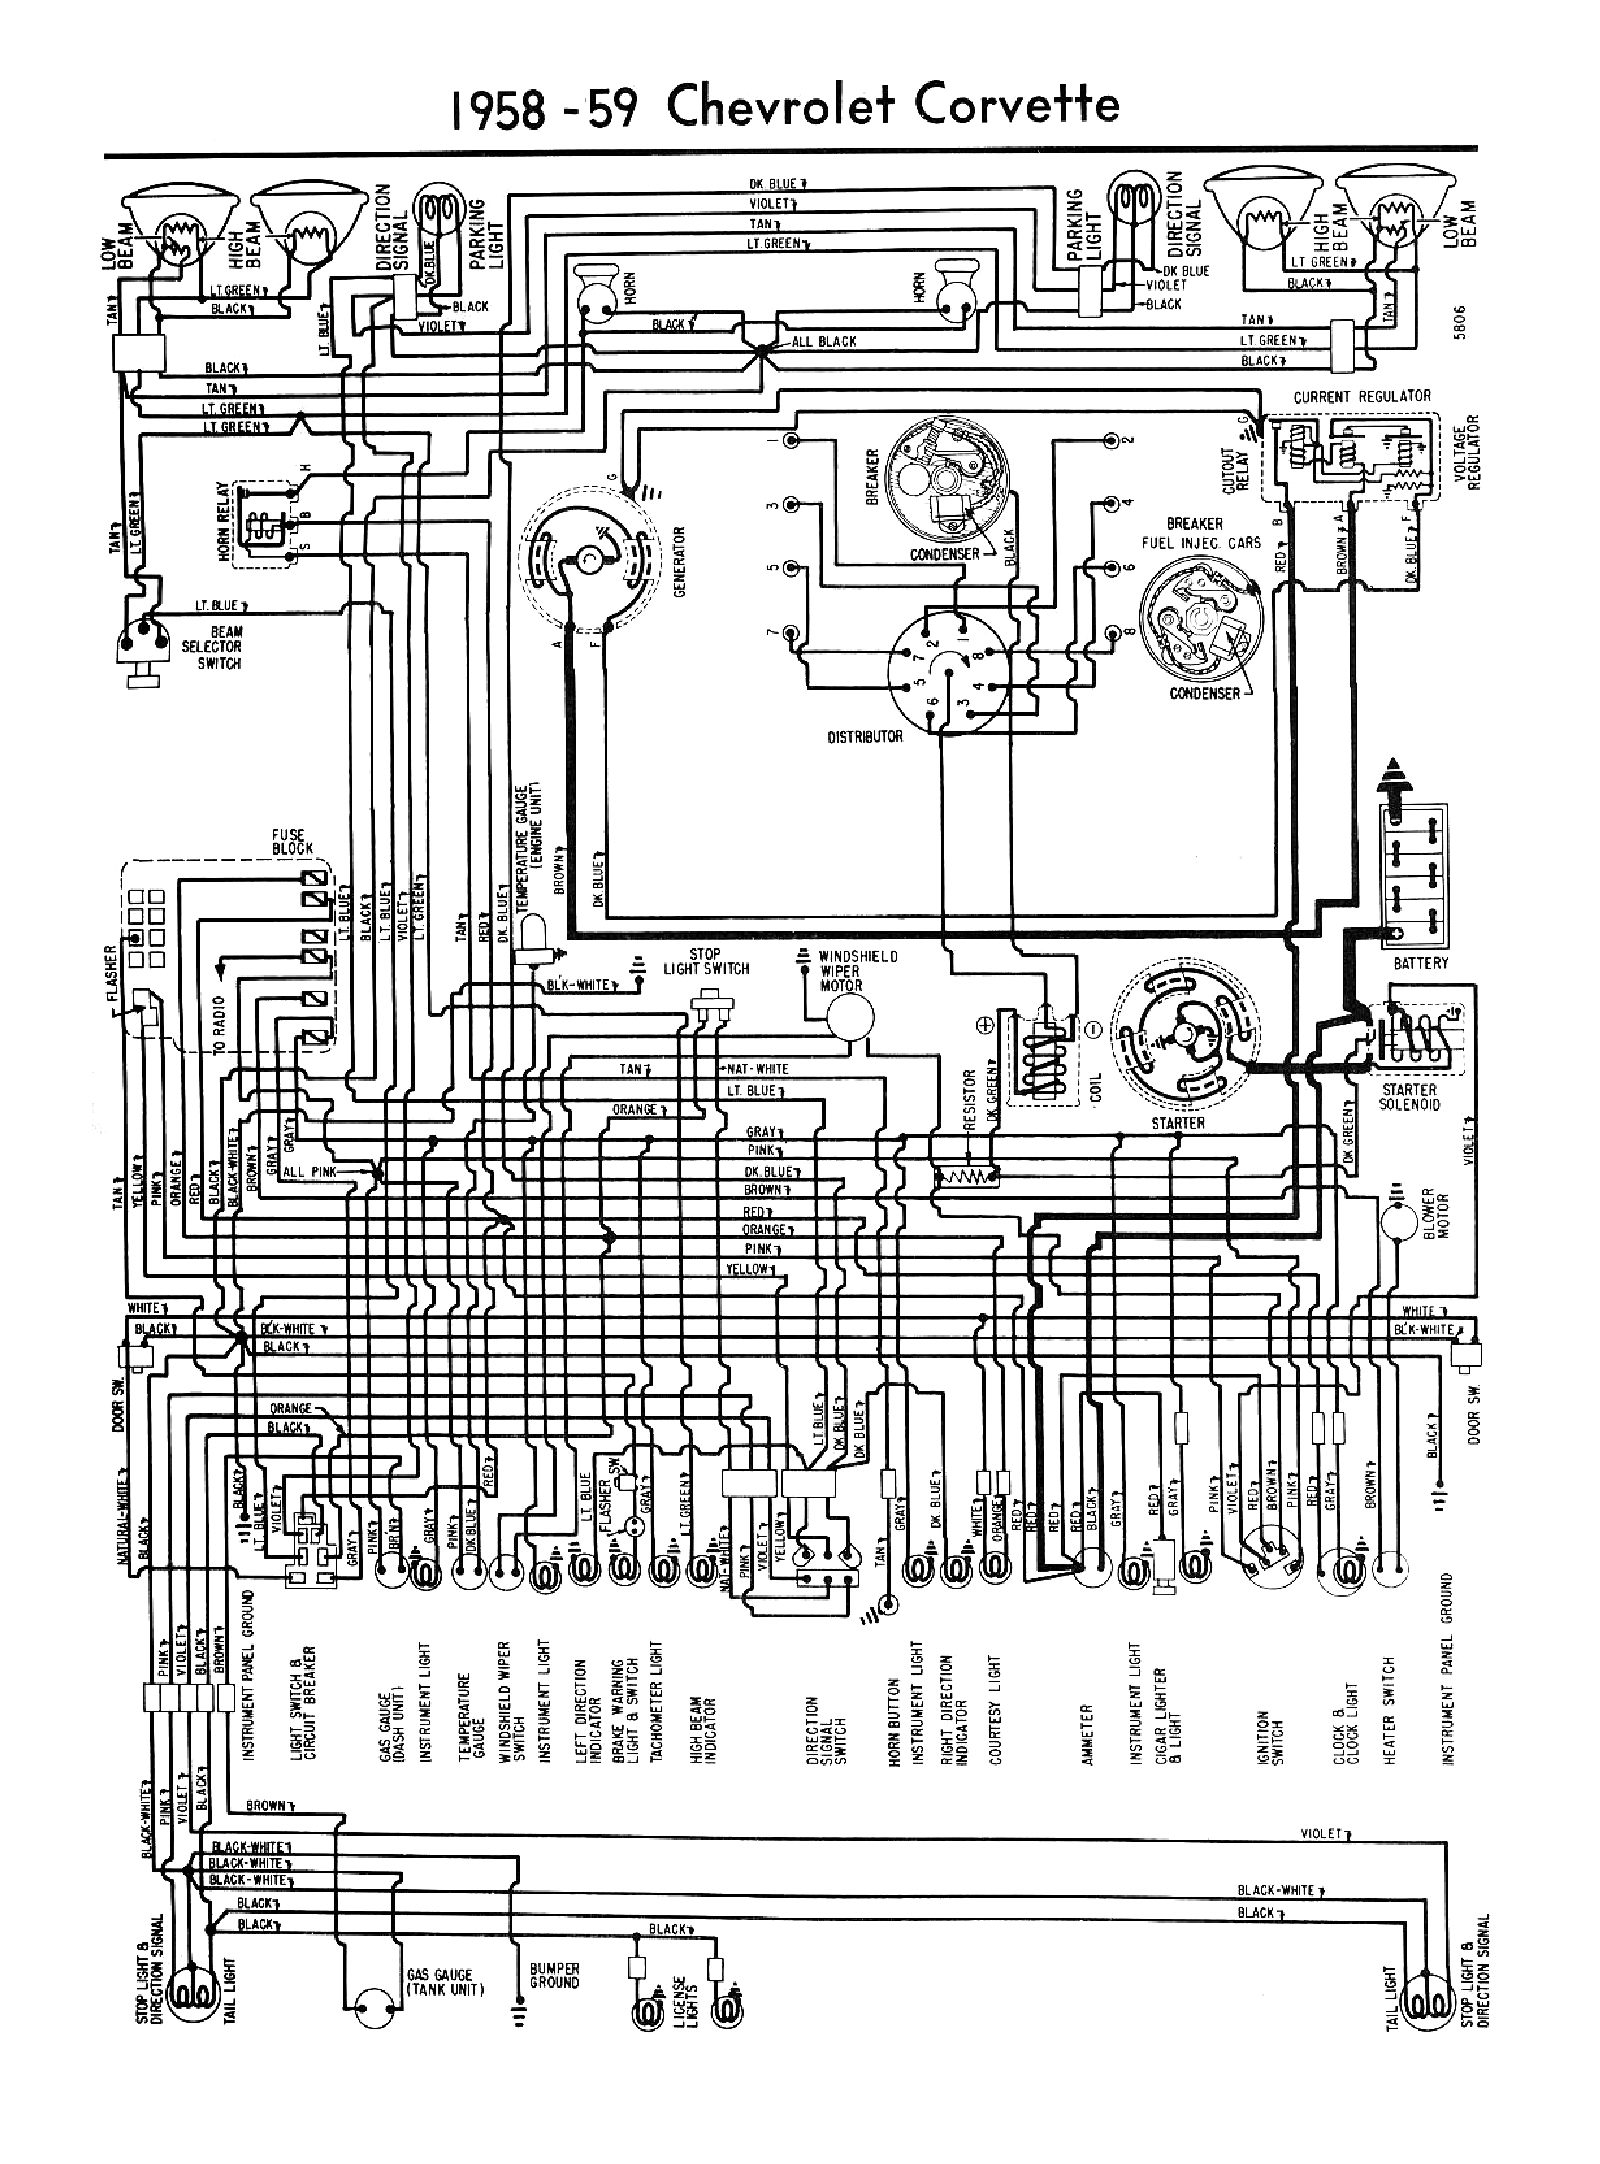 1964 Chevy El Camino Wiring Diagram Library 1972 Truck Pdf Simple Pickup 1959